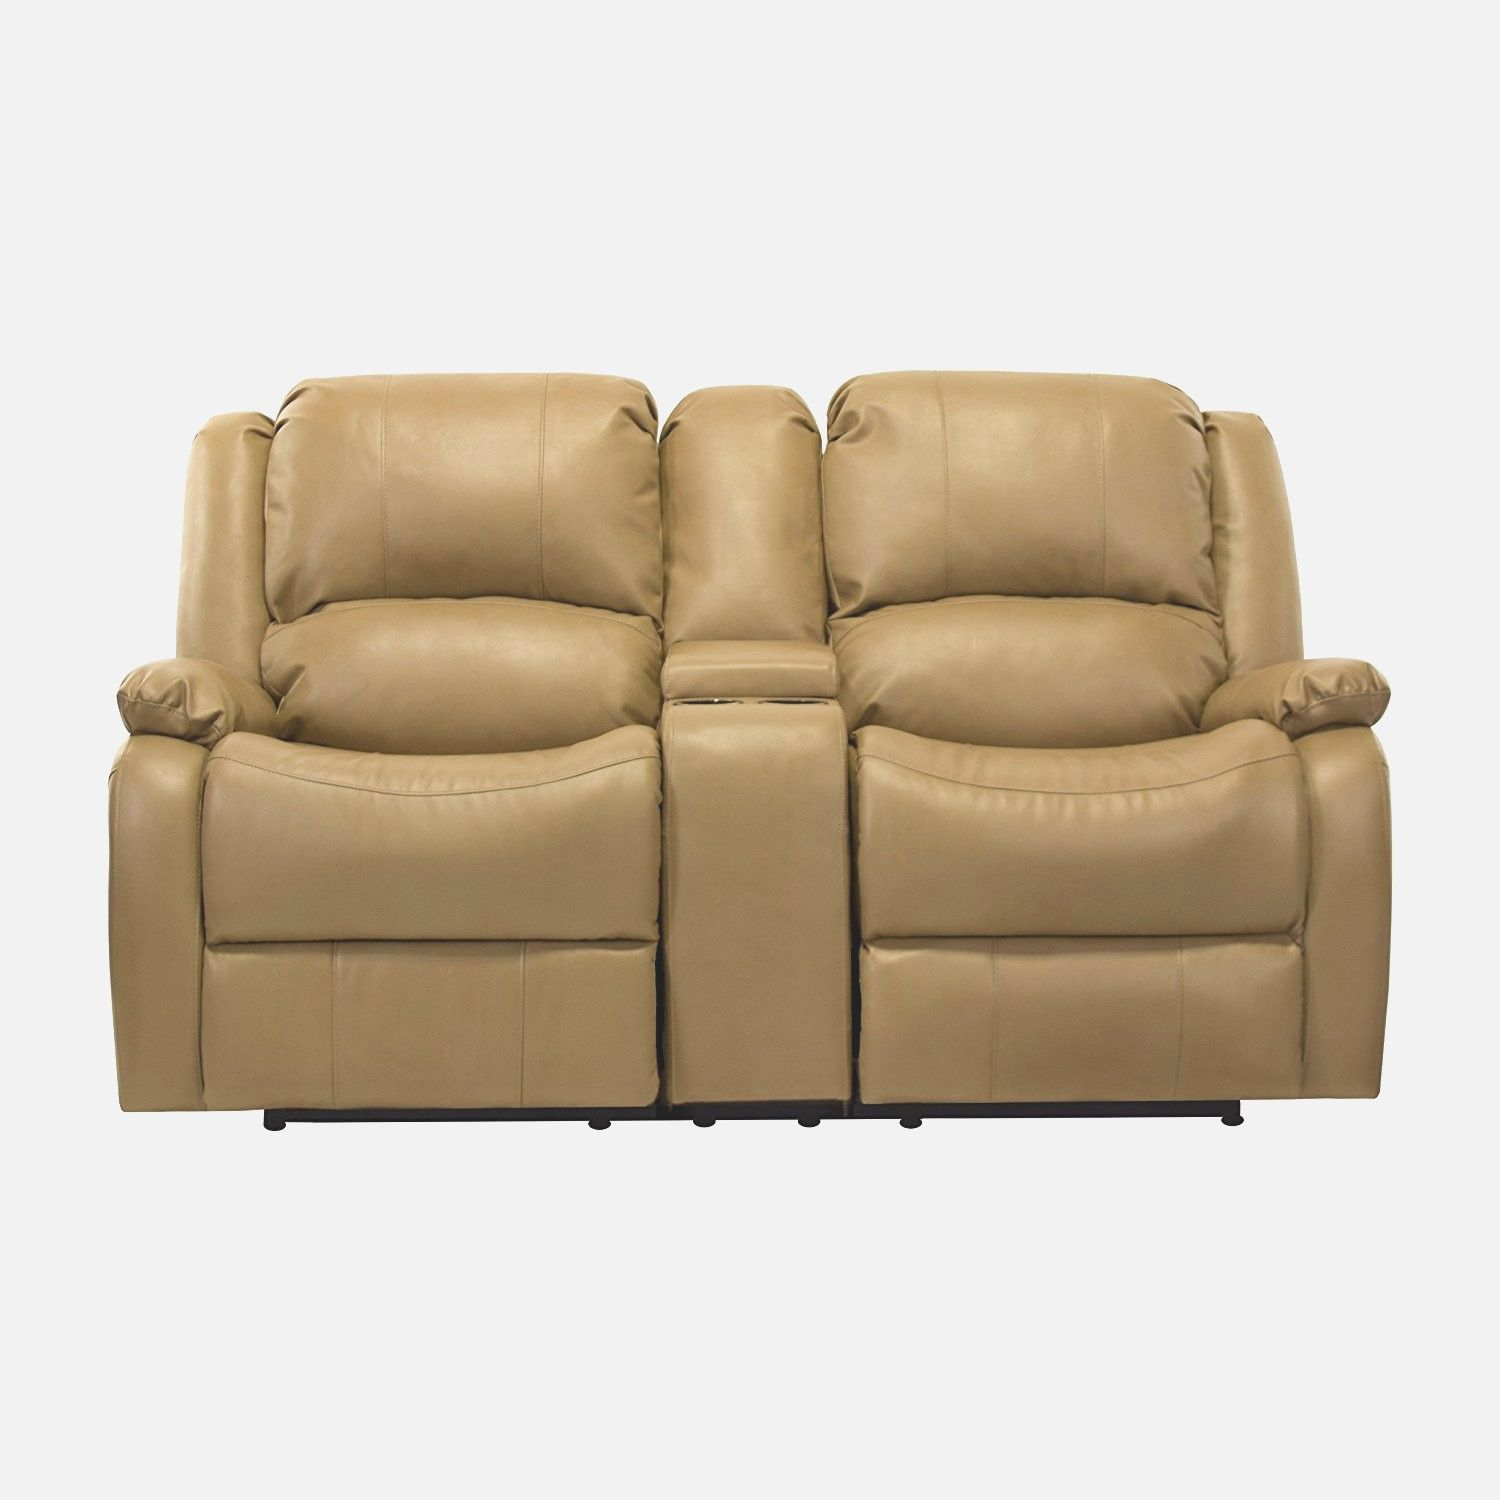 Recliner Sofa For Rv Measurements In Inches Wall Hugger Reclining Fresh